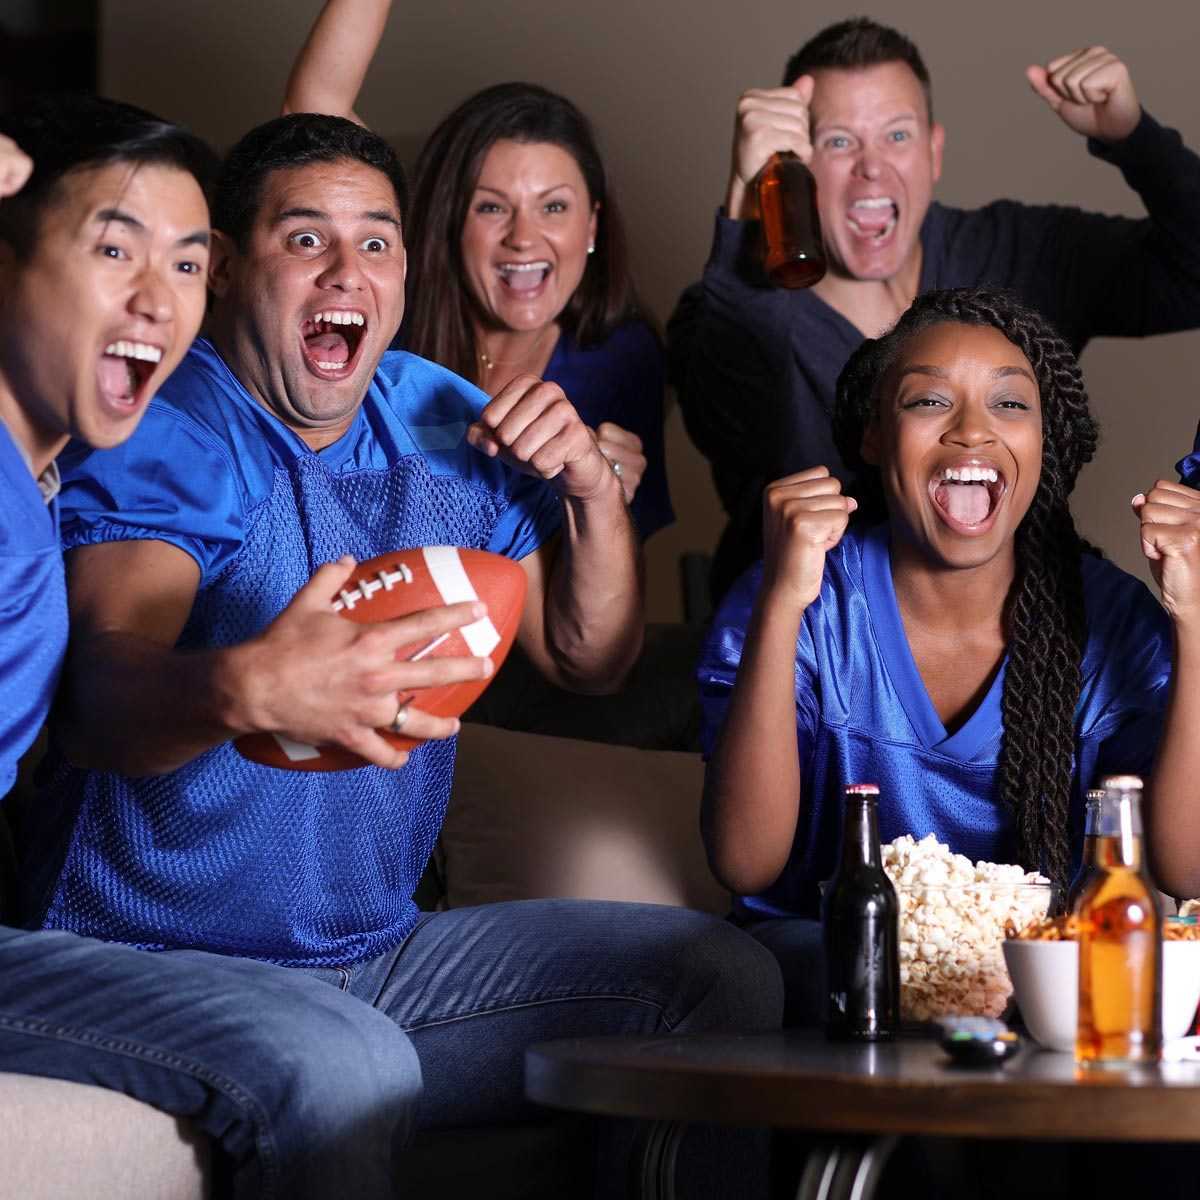 Football fans watching the game at home on television